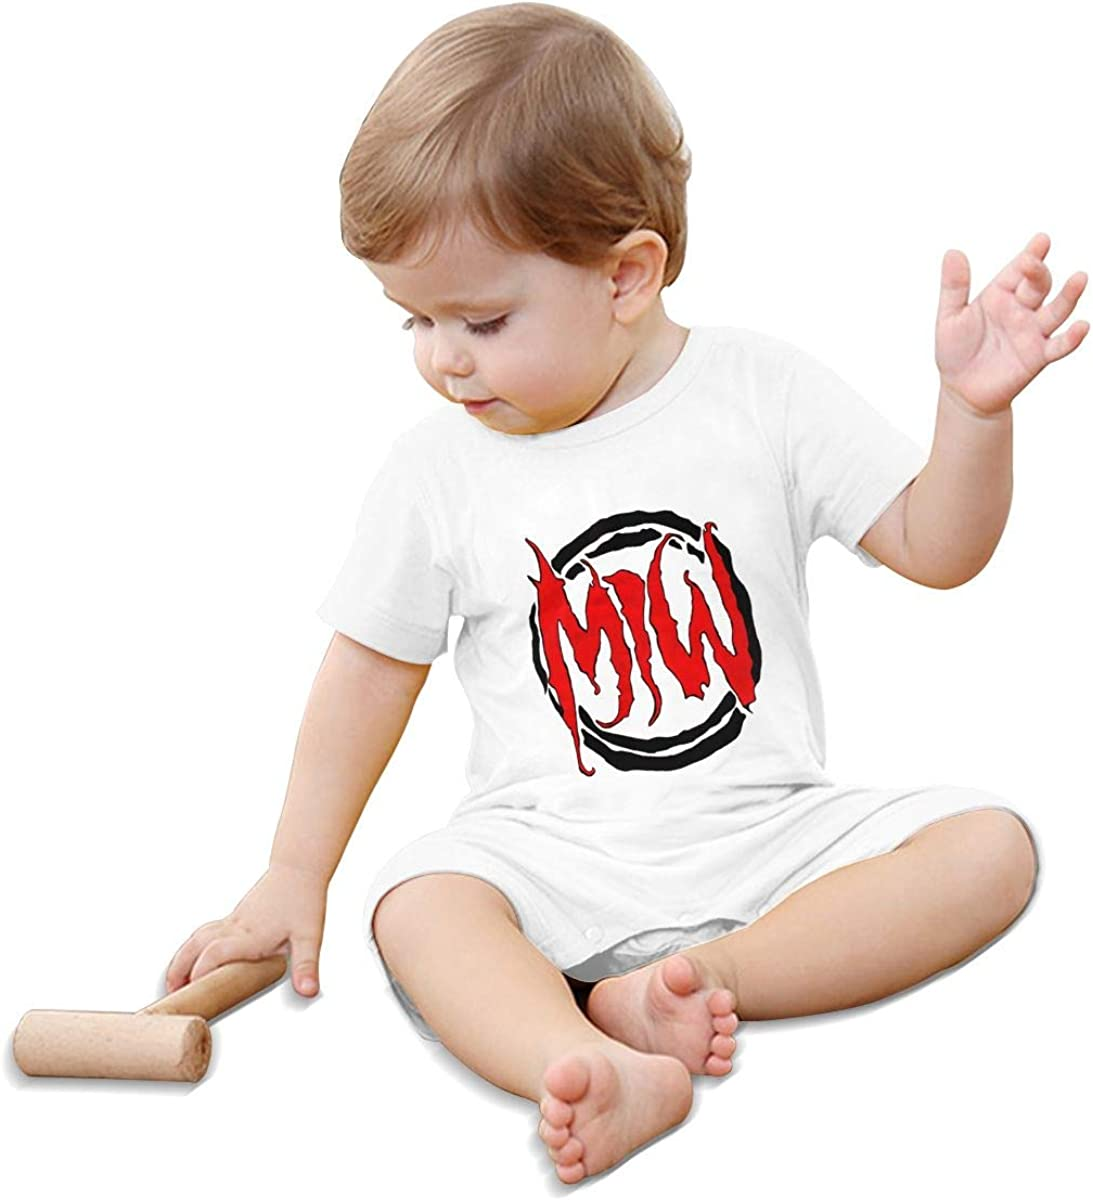 Motionless in White Fashionable Cute Cotton Baby Short-Sleeved Jumpsuit Newborn Climbing Suit